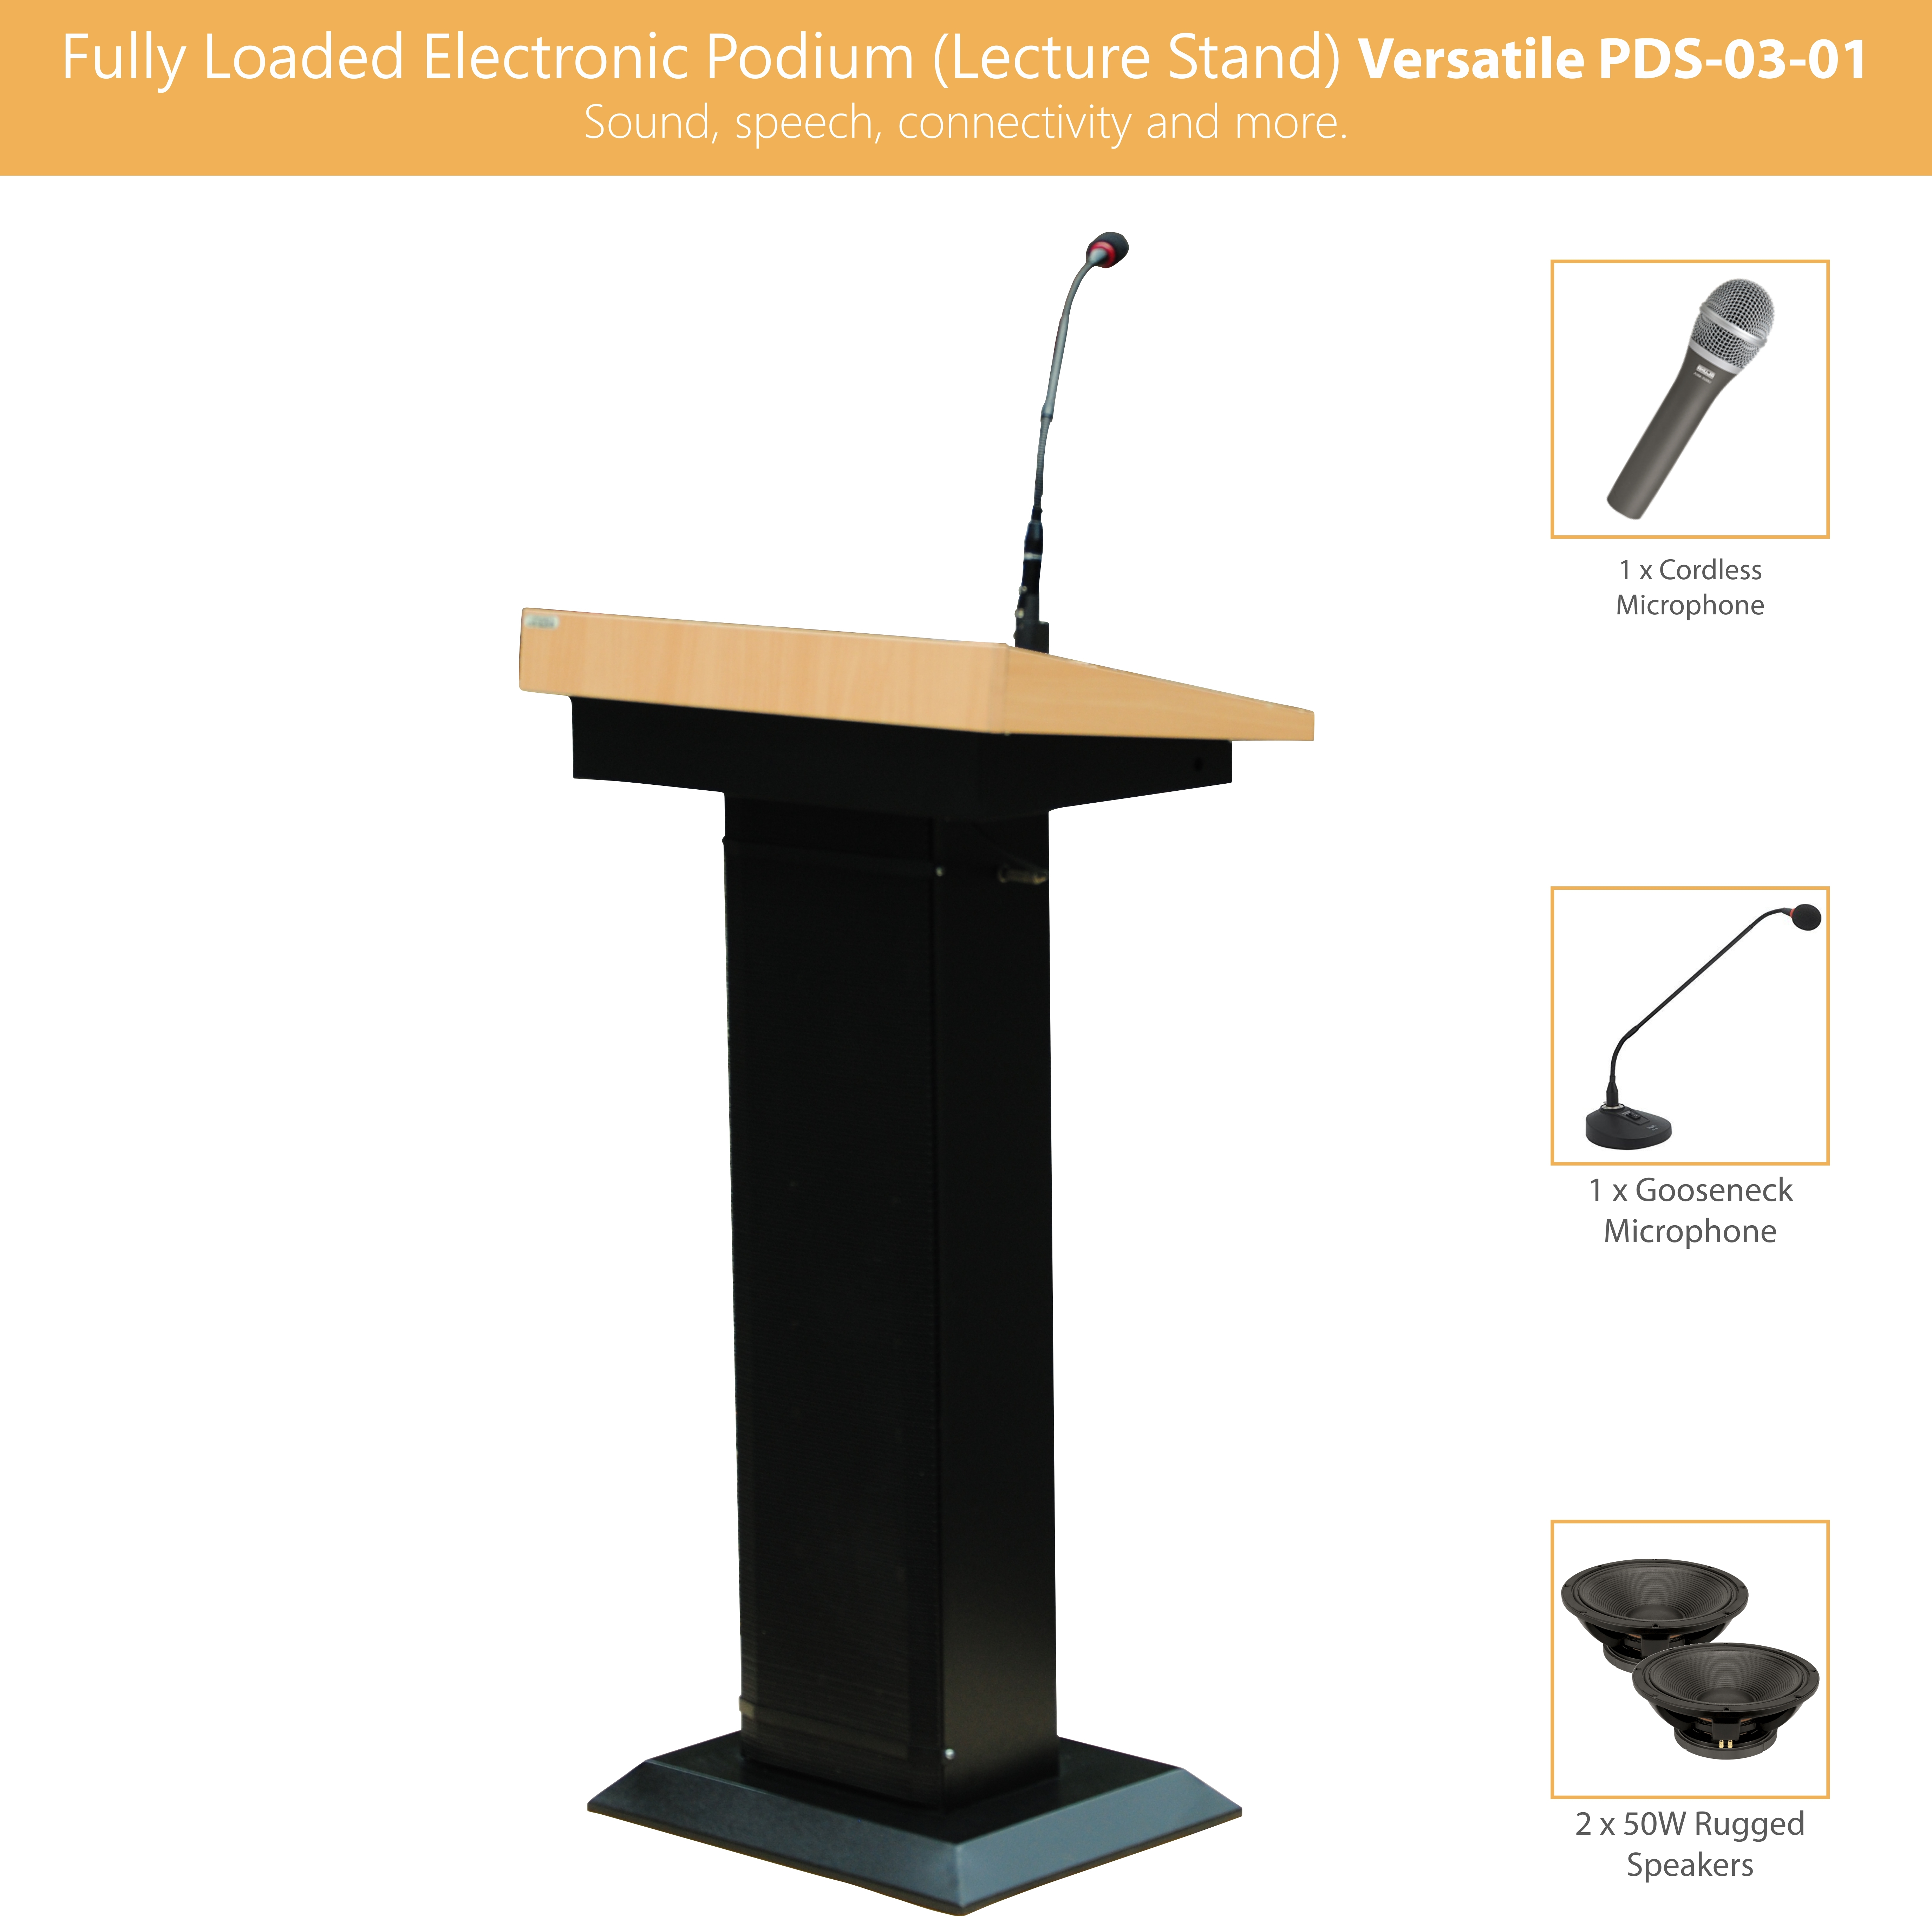 Fully Loaded Electronic Podium (Lecture Stand)